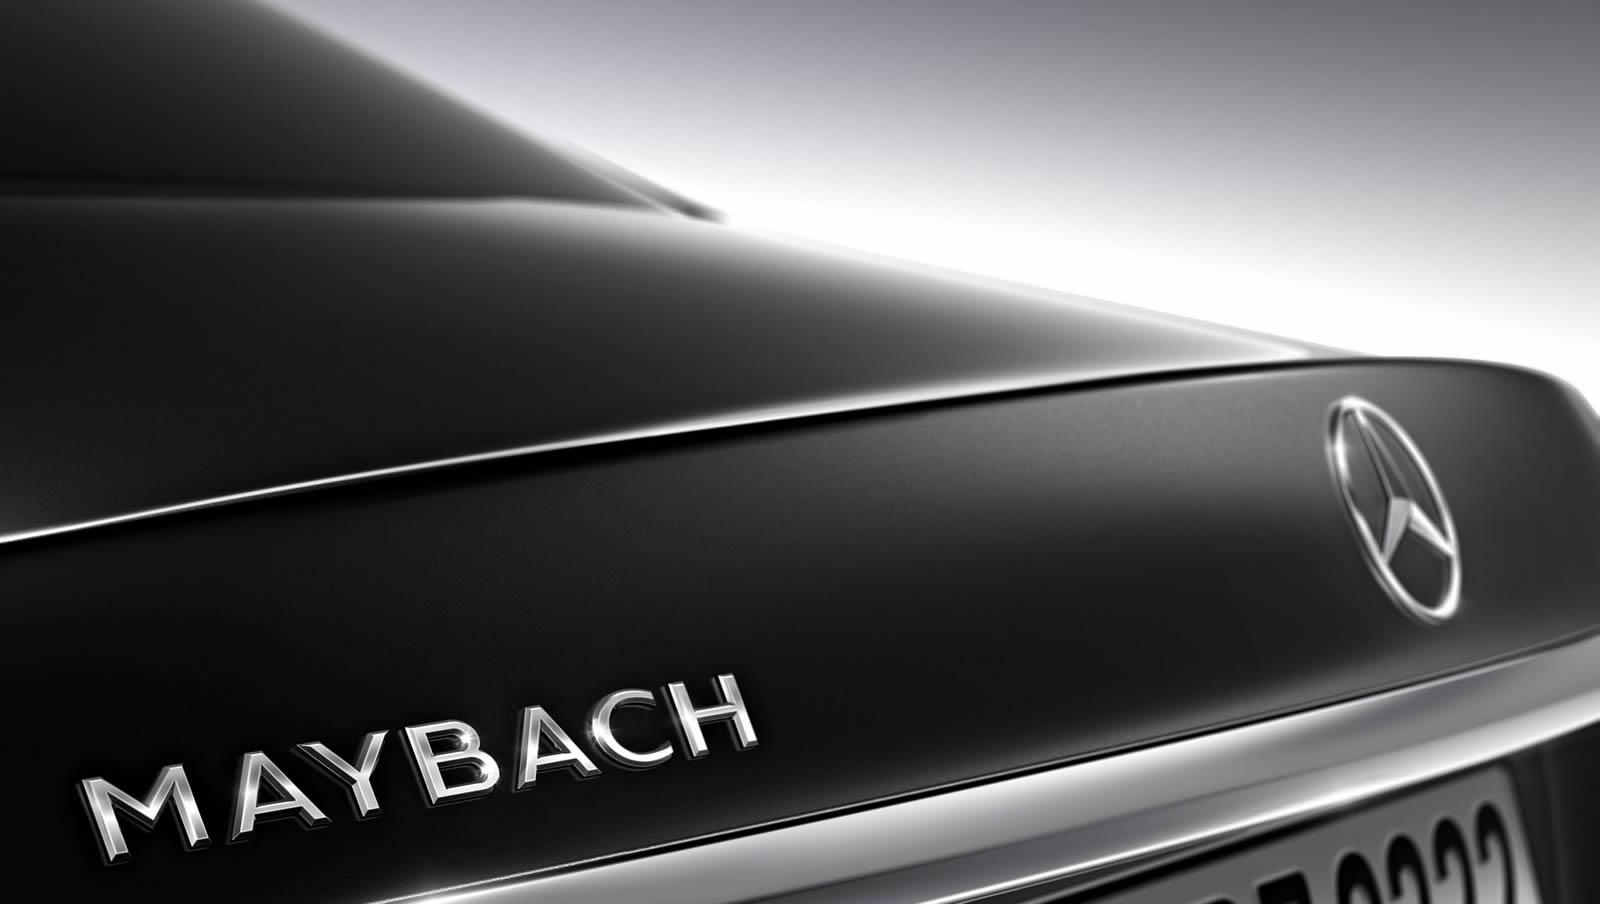 mercedes maybach s600 badge